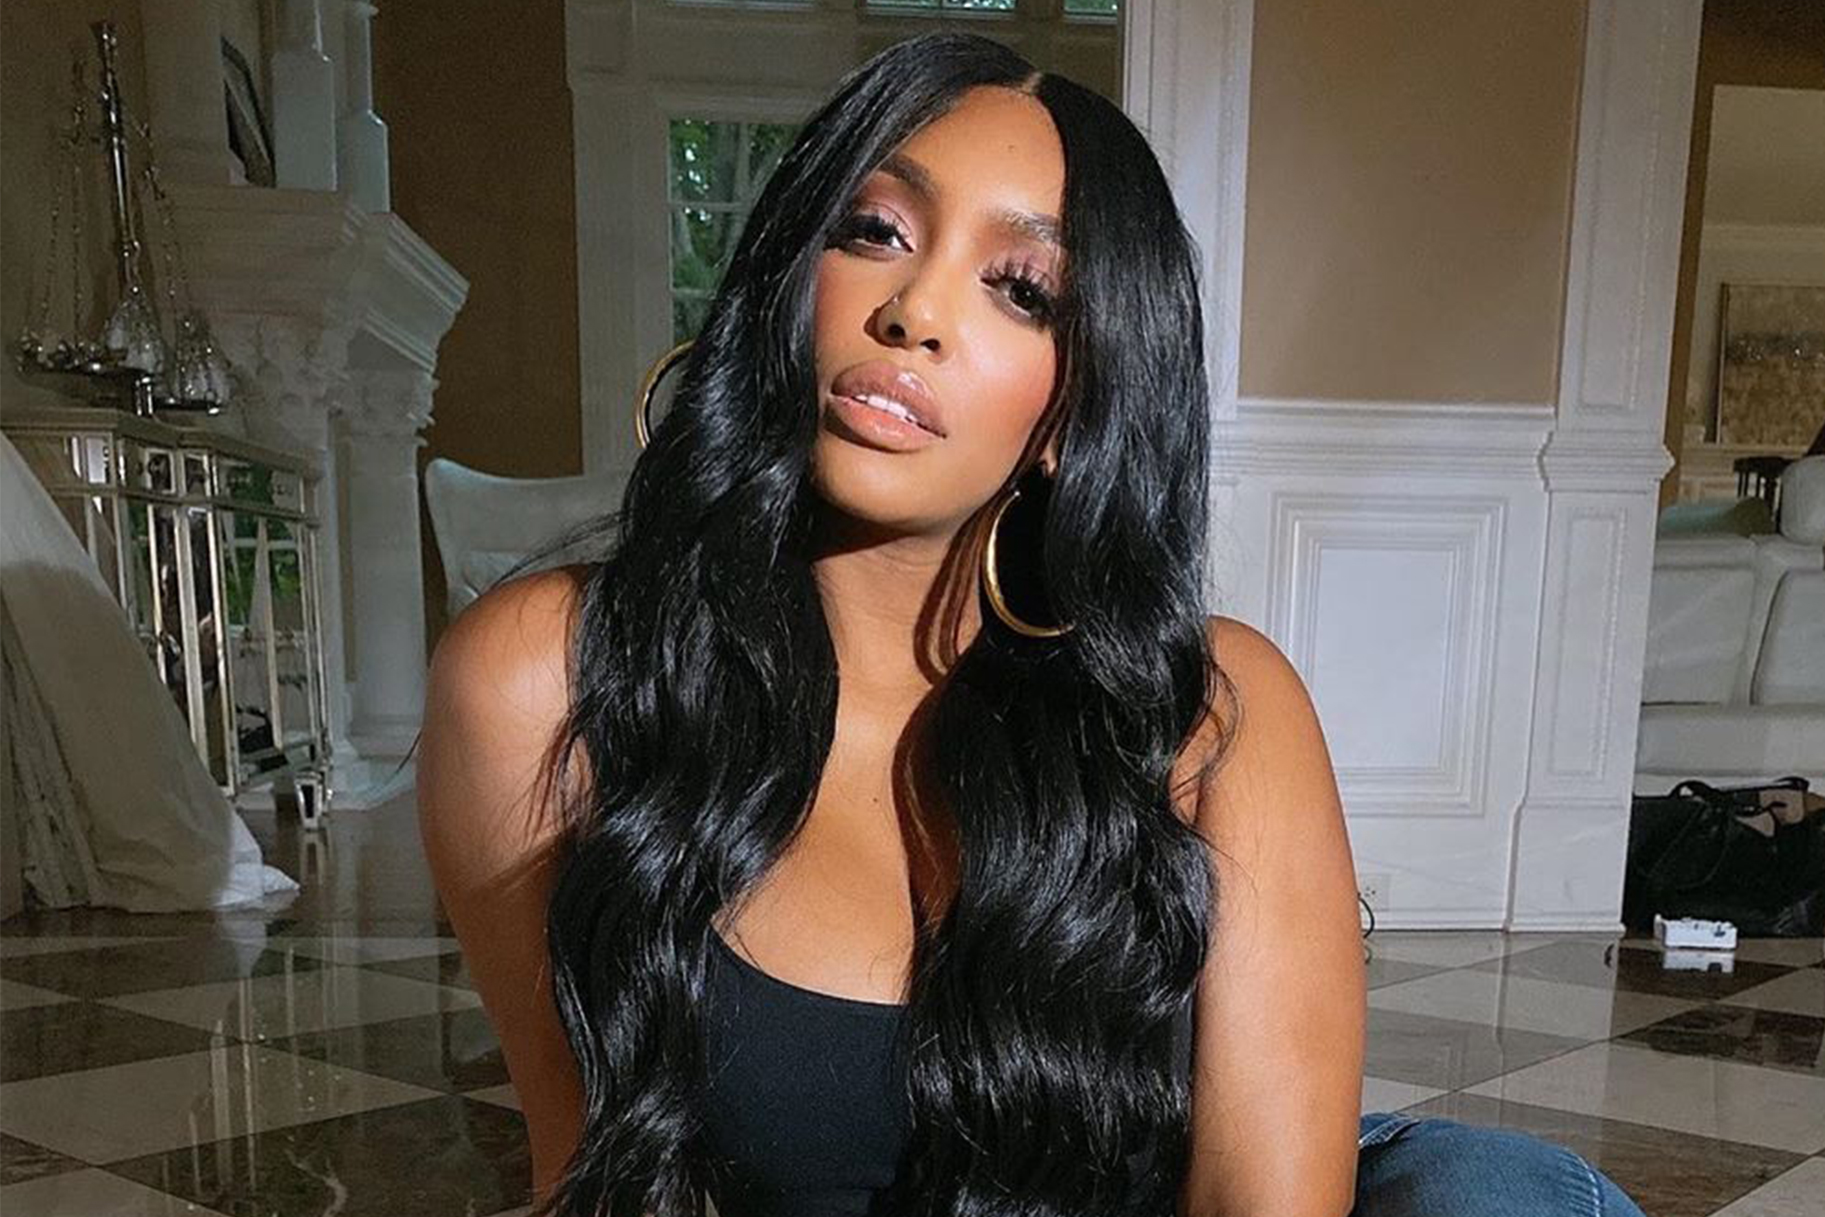 Porsha Williams Praises Her Daughter, PJ - See The Gorgeous Photo She Shared